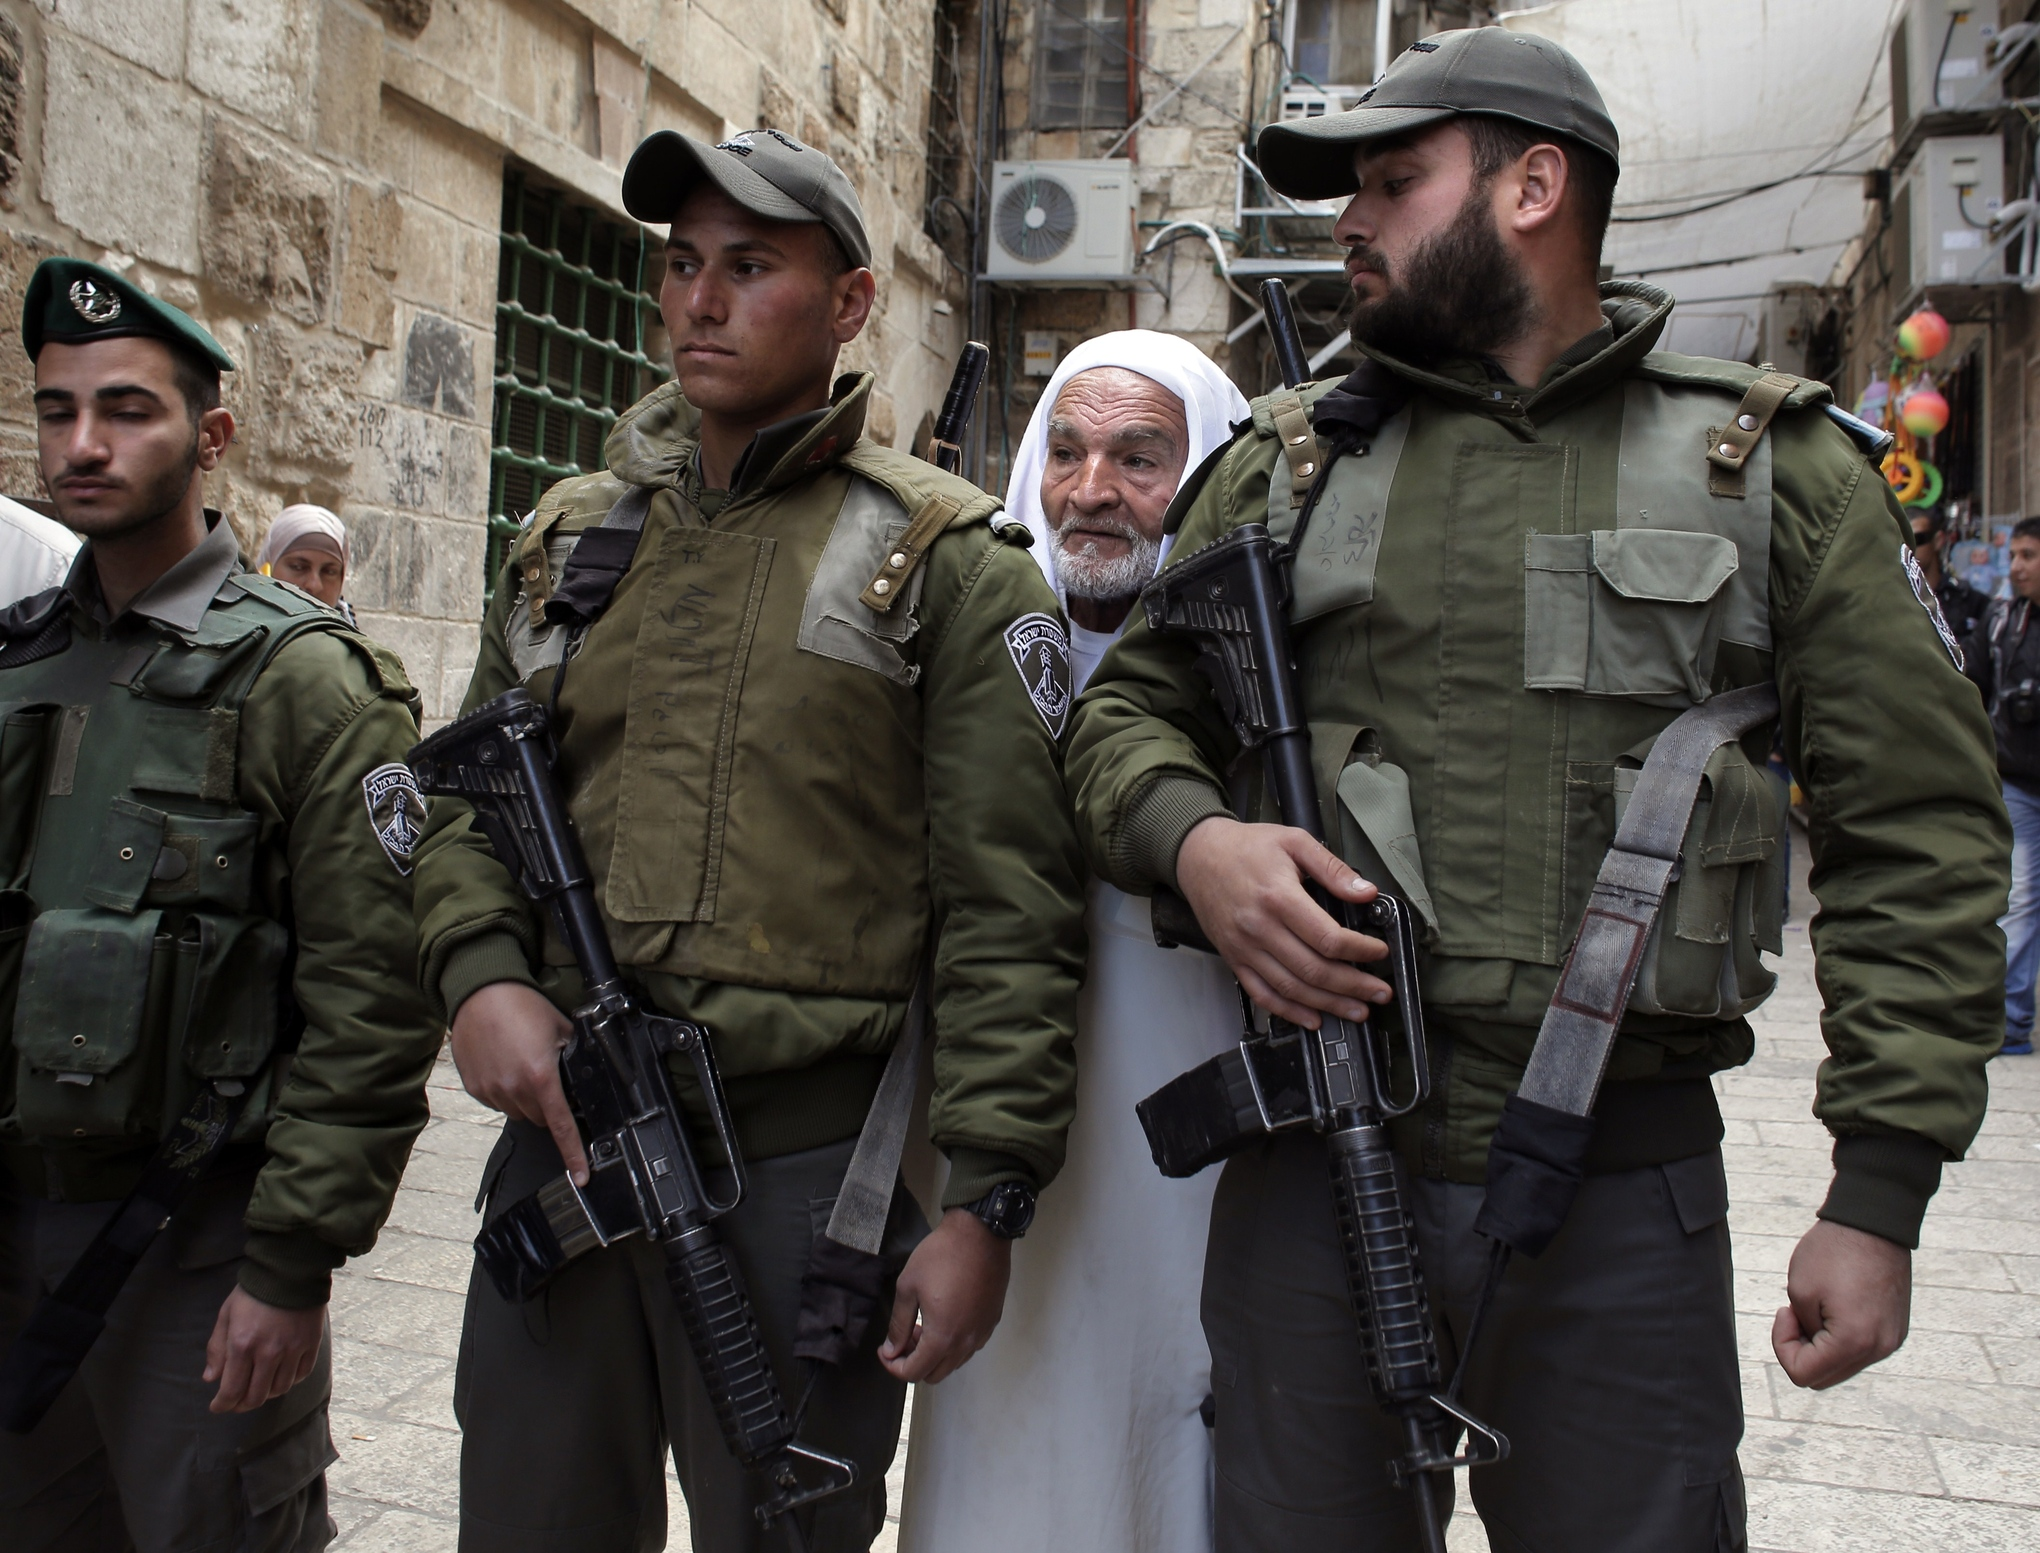 Mosque Aqsa Surrounded Al-aqsa Mosque Compound on